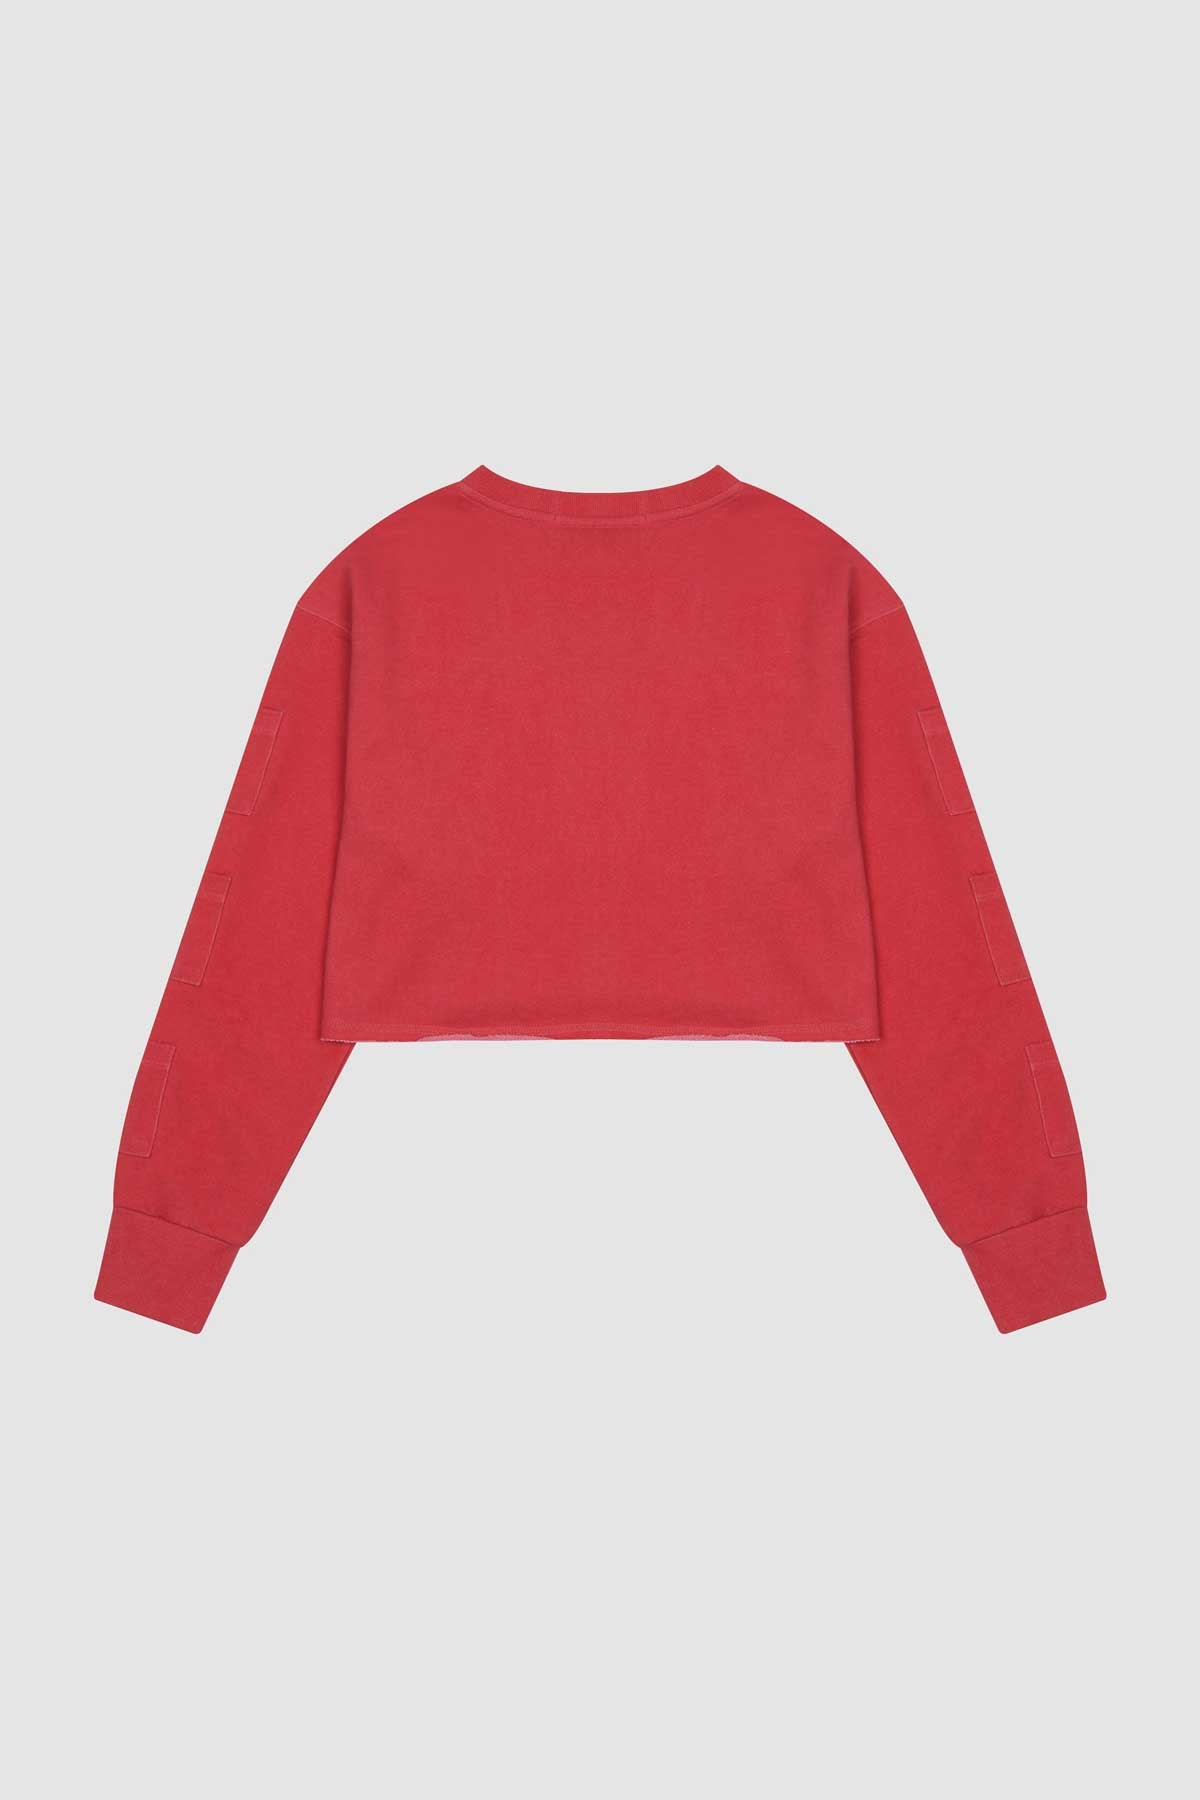 Photo of Goji Berry Women's Cropped Crewneck, number 3